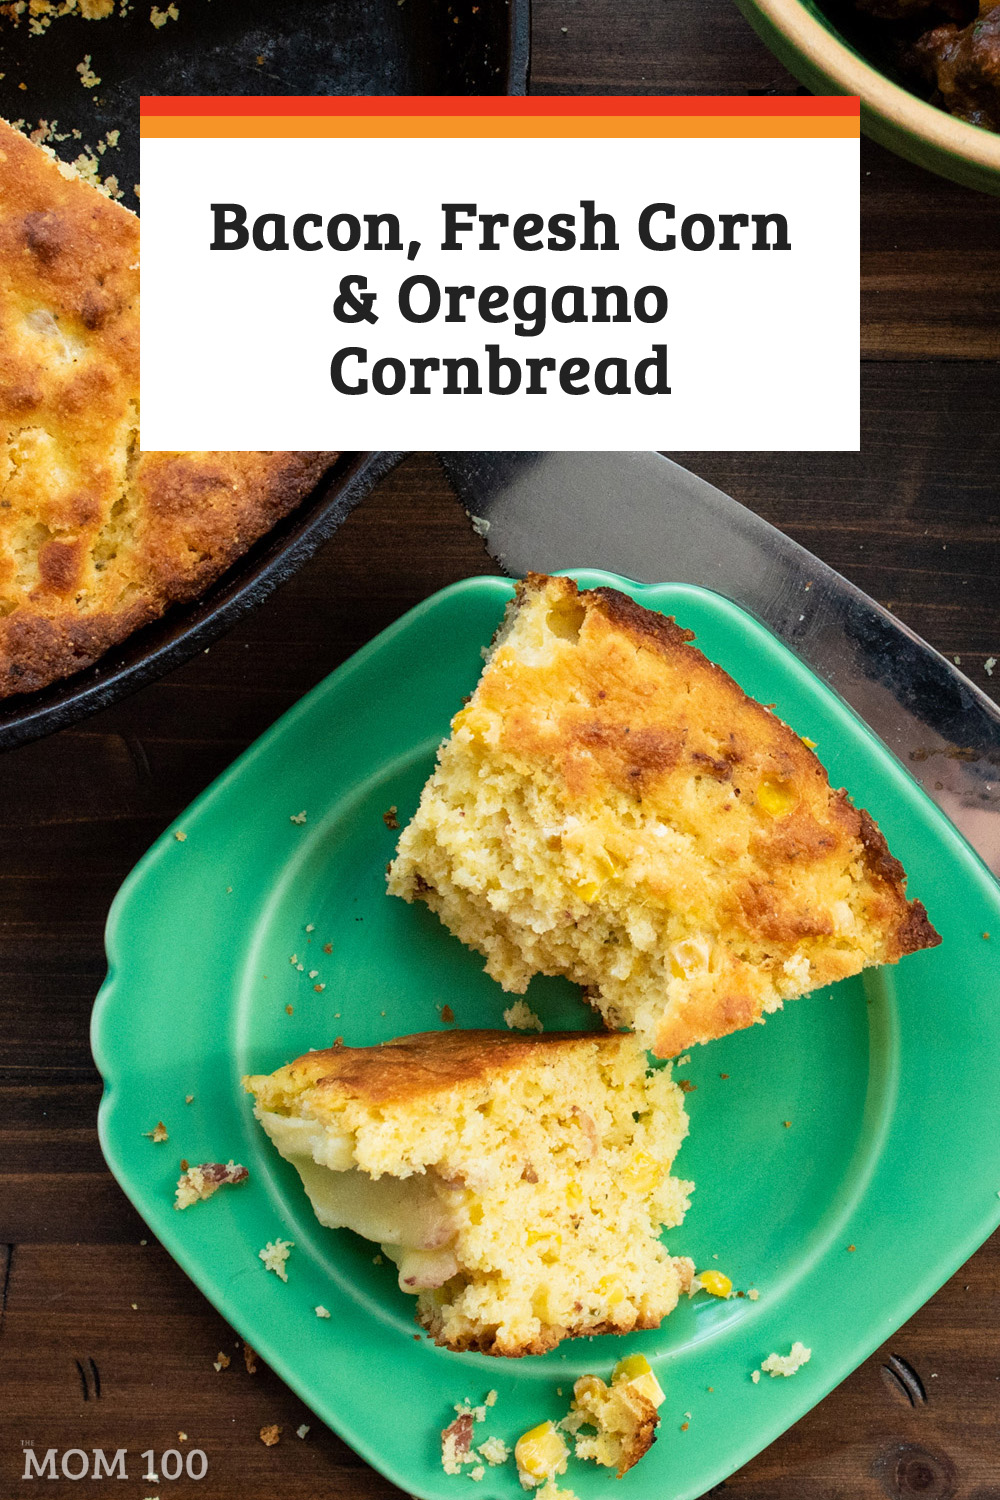 Bacon, Fresh Corn and Oregano Cornbread. A great way to make use of extra ears of corn - also: bacon!  Crisp up some extra strips for this.